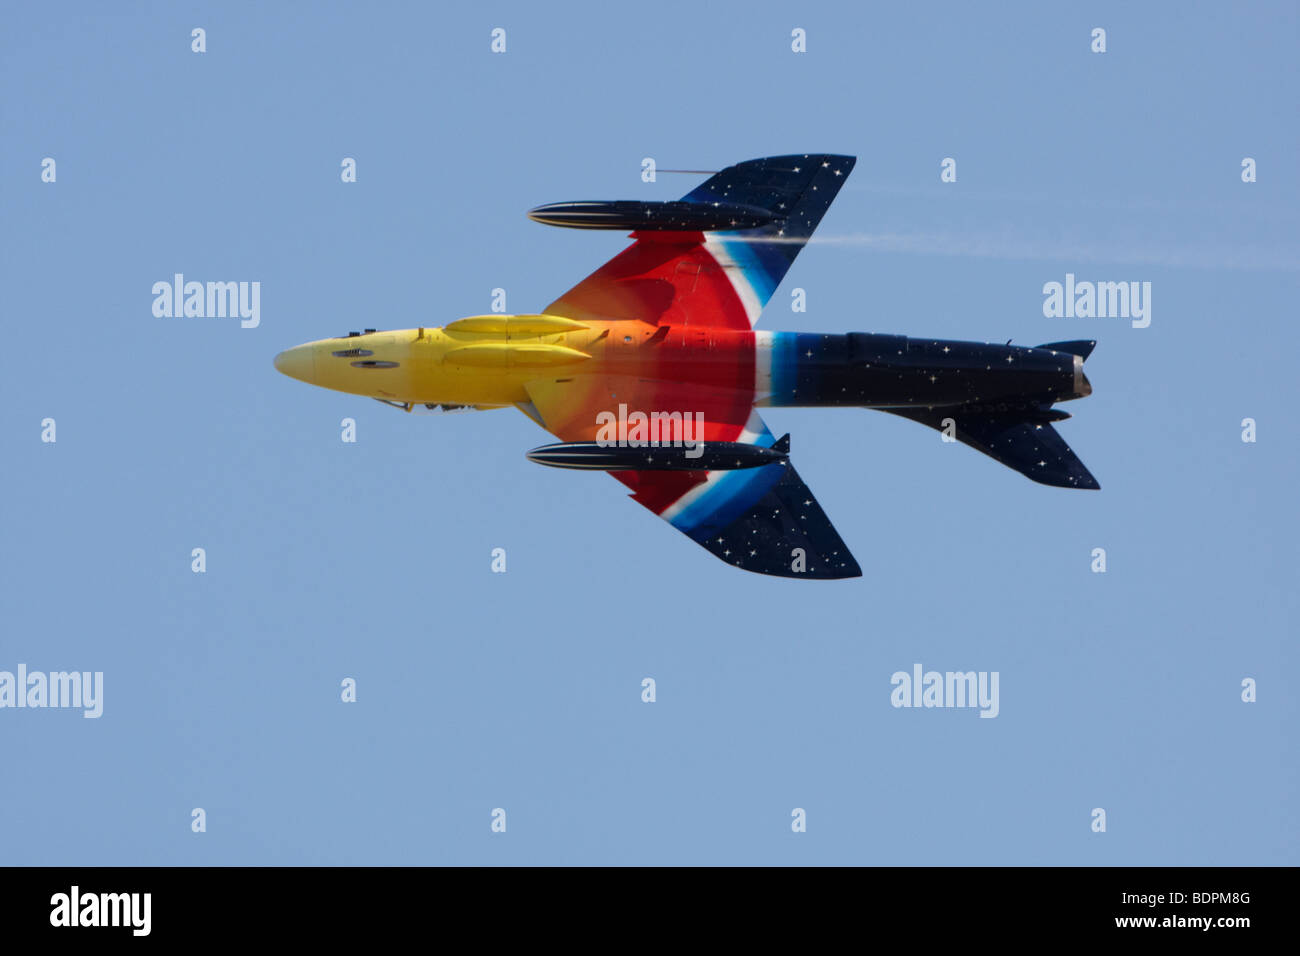 Hawker hunter doing a roll during a display at Clacton, Essex, England, United Kingdom Stock Photo